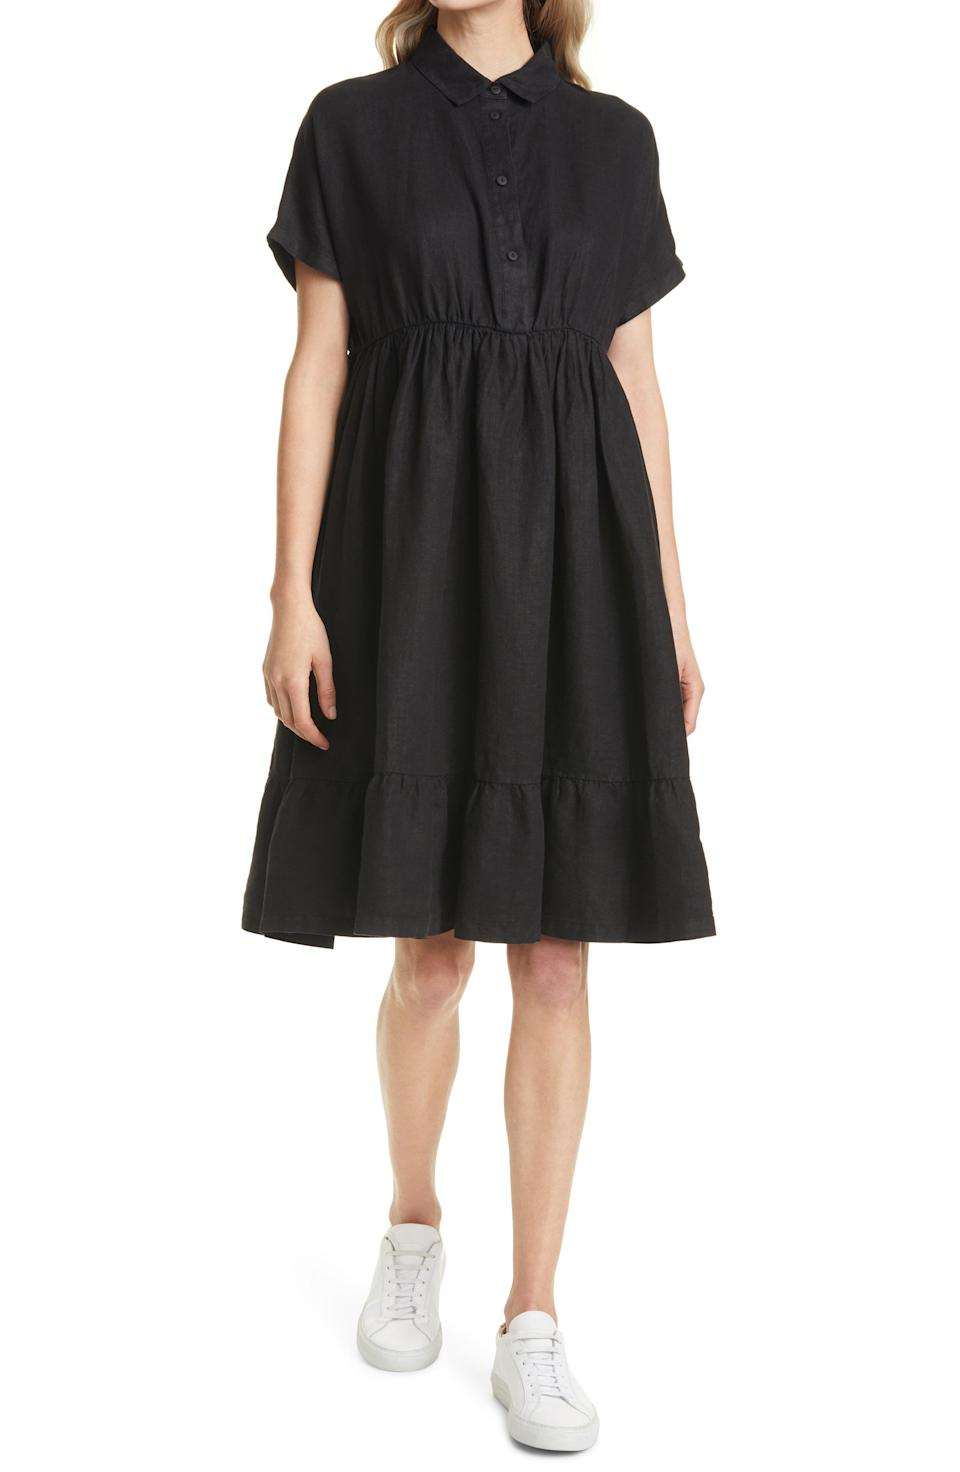 """<p><strong>MAX MARA LEISURE</strong></p><p>nordstrom.com</p><p><strong>$350.00</strong></p><p><a href=""""https://go.redirectingat.com?id=74968X1596630&url=https%3A%2F%2Fwww.nordstrom.com%2Fs%2Fmax-mara-leisure-ruffle-hem-linen-dress%2F5861725&sref=https%3A%2F%2Fwww.townandcountrymag.com%2Fstyle%2Fg36049039%2Fbest-linen-dresses-women%2F"""" rel=""""nofollow noopener"""" target=""""_blank"""" data-ylk=""""slk:Shop Now"""" class=""""link rapid-noclick-resp"""">Shop Now</a></p><p>Don't be fooled by the dark color. This swingy, ruffled hem shirtdress is as cool as it comes—and looks amazing with <a href=""""https://www.townandcountrymag.com/style/fashion-trends/g32867887/best-slip-on-sneakers/"""" rel=""""nofollow noopener"""" target=""""_blank"""" data-ylk=""""slk:sneakers"""" class=""""link rapid-noclick-resp"""">sneakers</a>. </p>"""